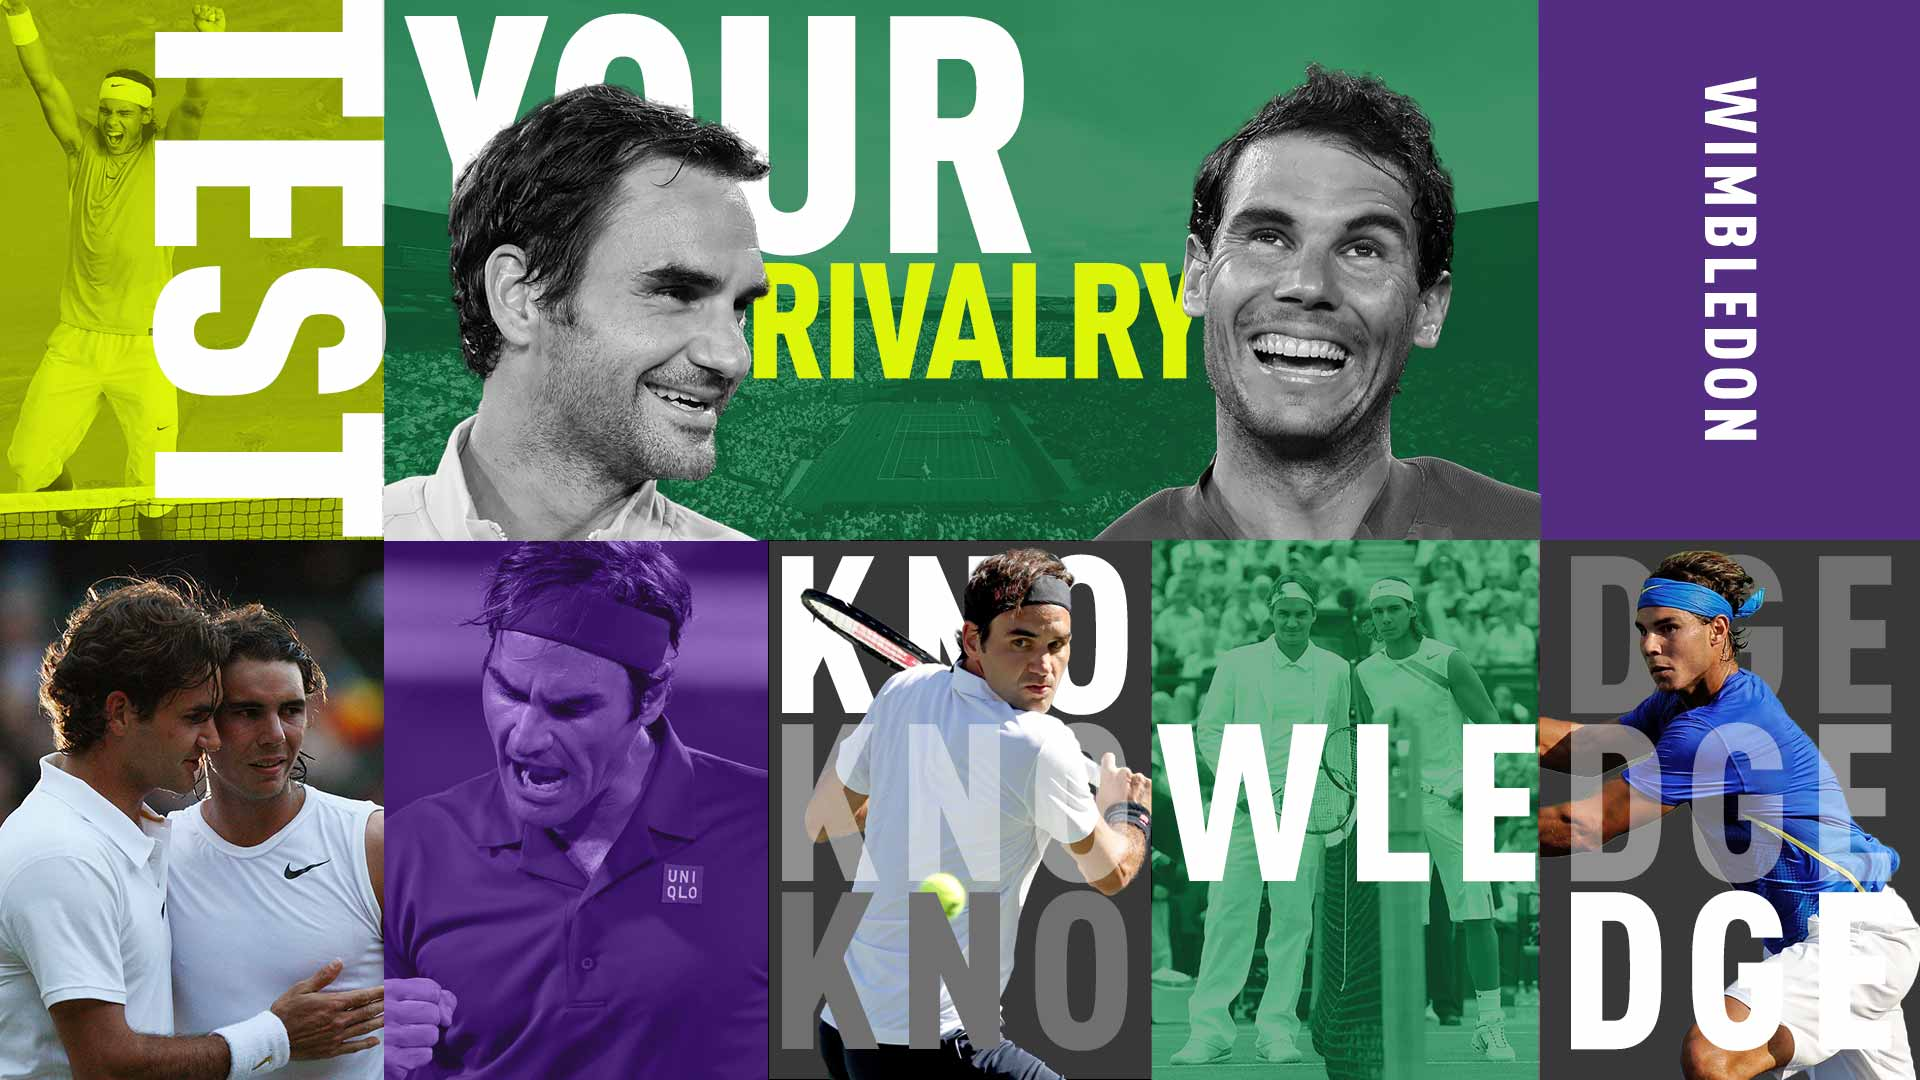 Roger Federer and Rafael Nadal will play at Wimbledon for the fourth time in the semi-finals on Friday